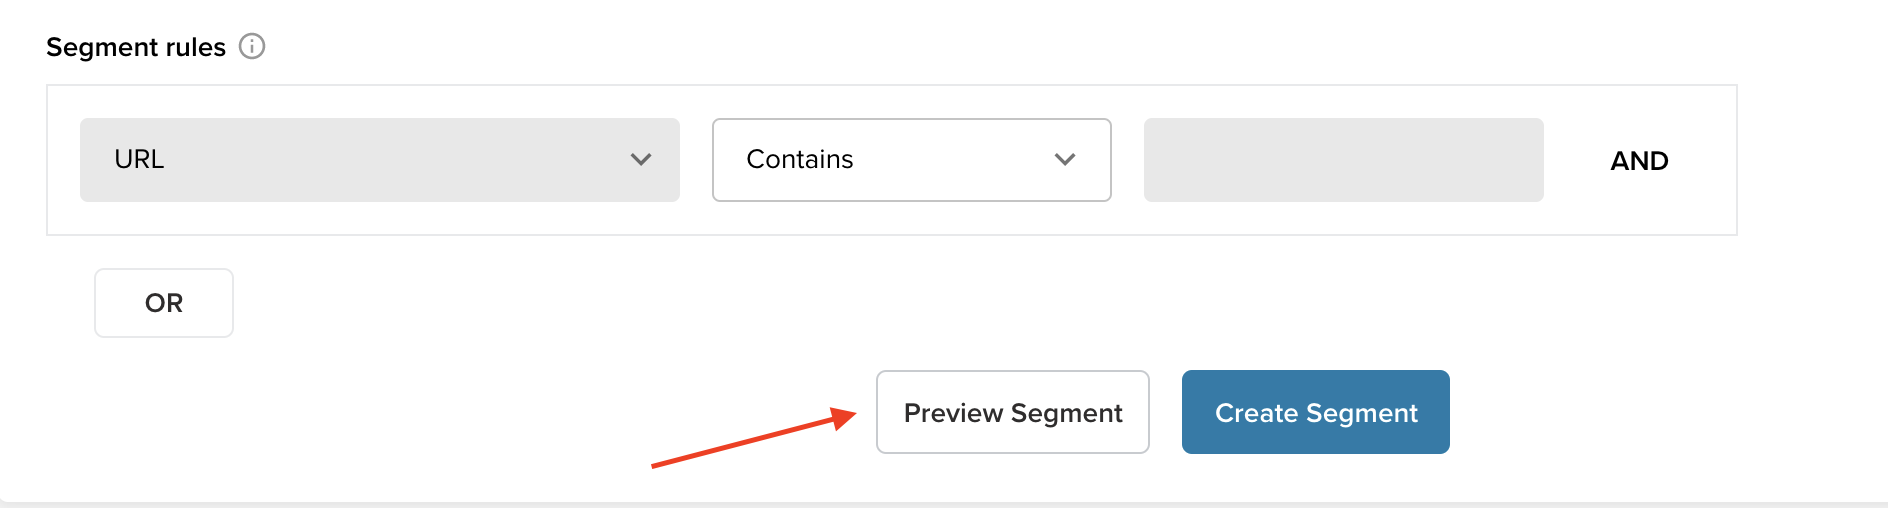 How to preview a segment before crawling your website with Deepcrawl